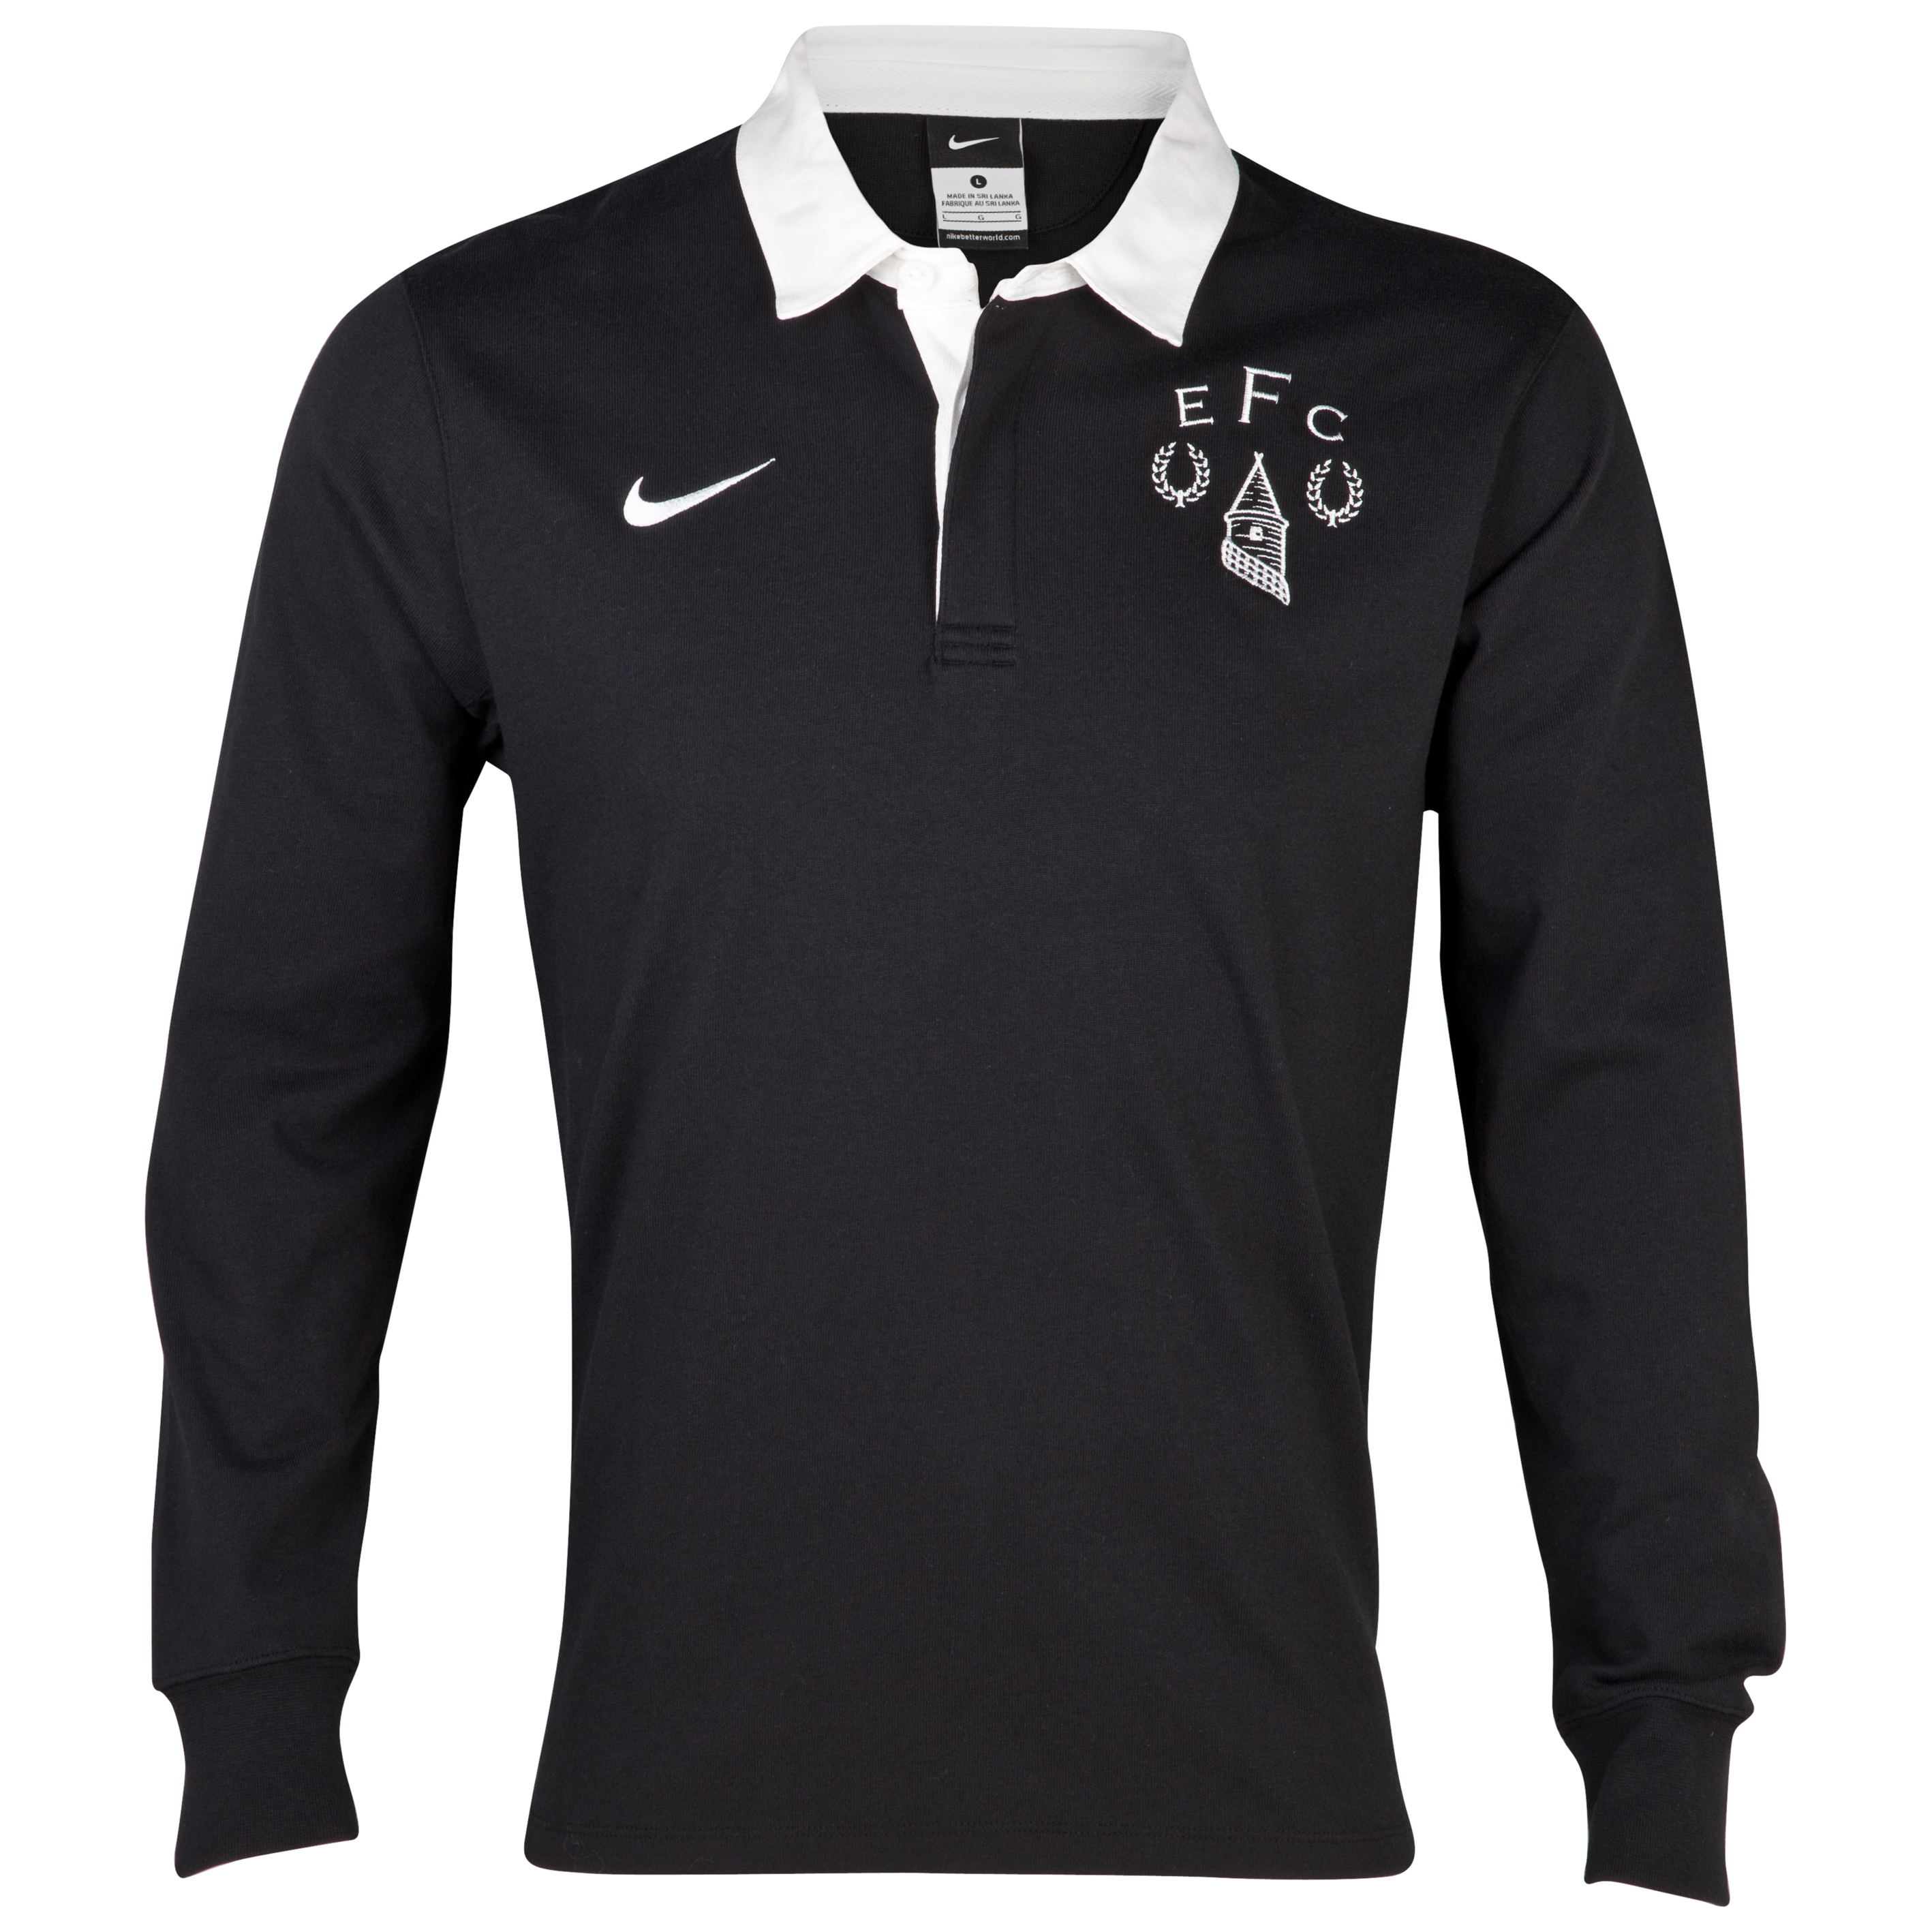 Everton Heritage Rugby Shirt - Black/White